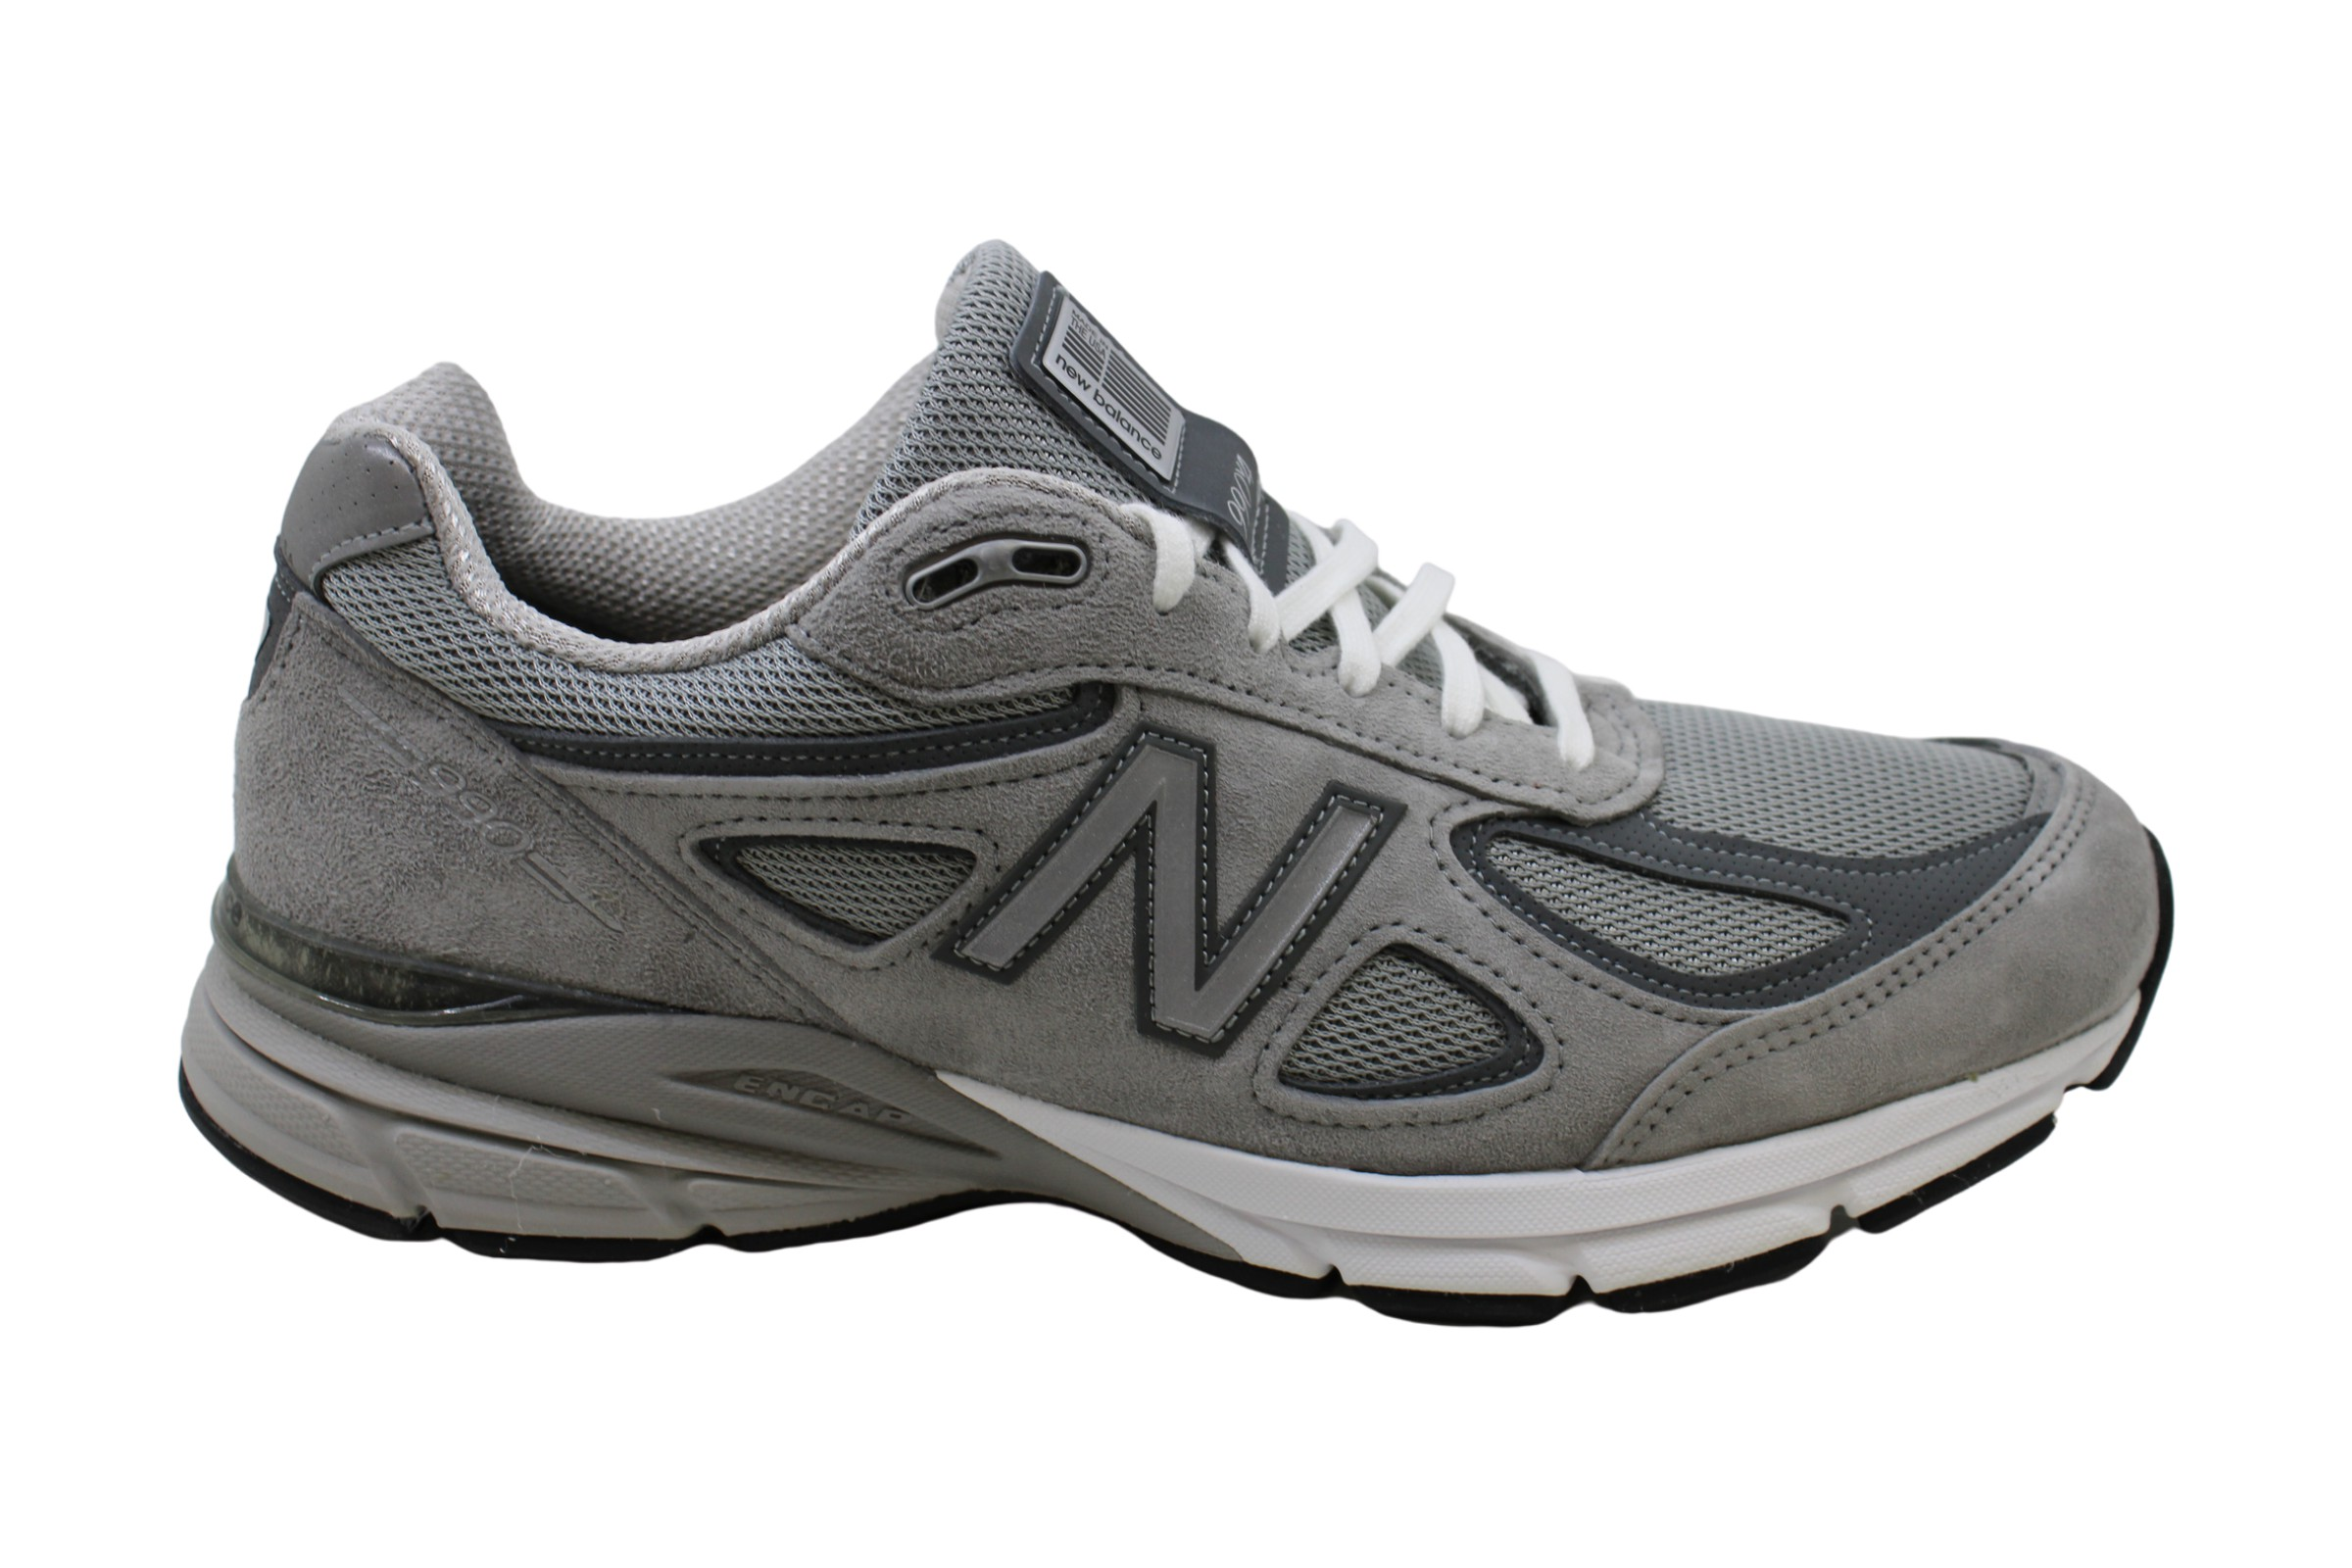 amazing price a few days away choose newest New Balance Women's w990v4 Running Shoe US